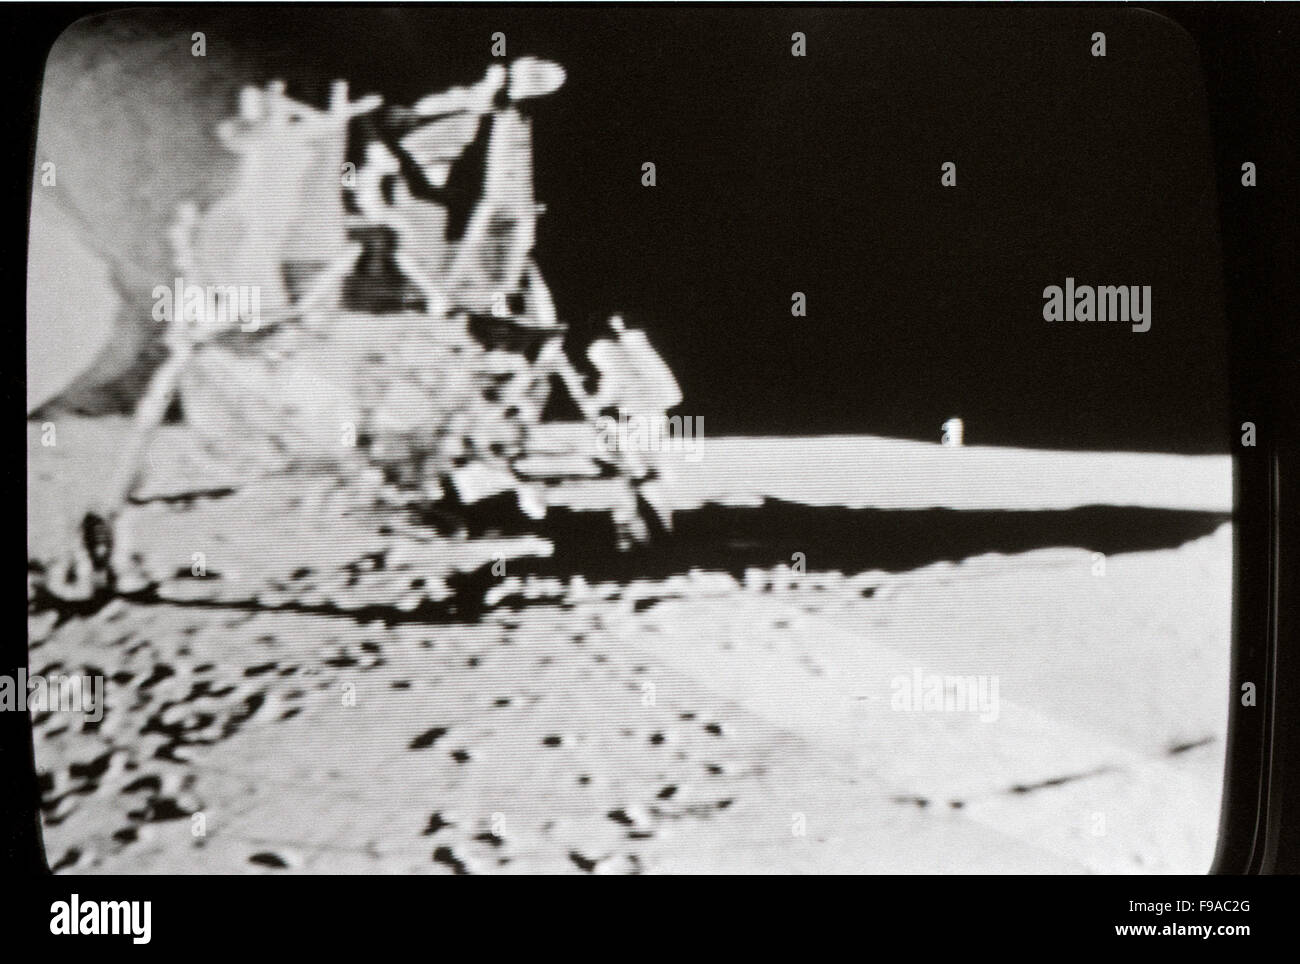 Apollo 11 Moon Landing 20 July 1969 Photographed In Actual Time On The Television Los